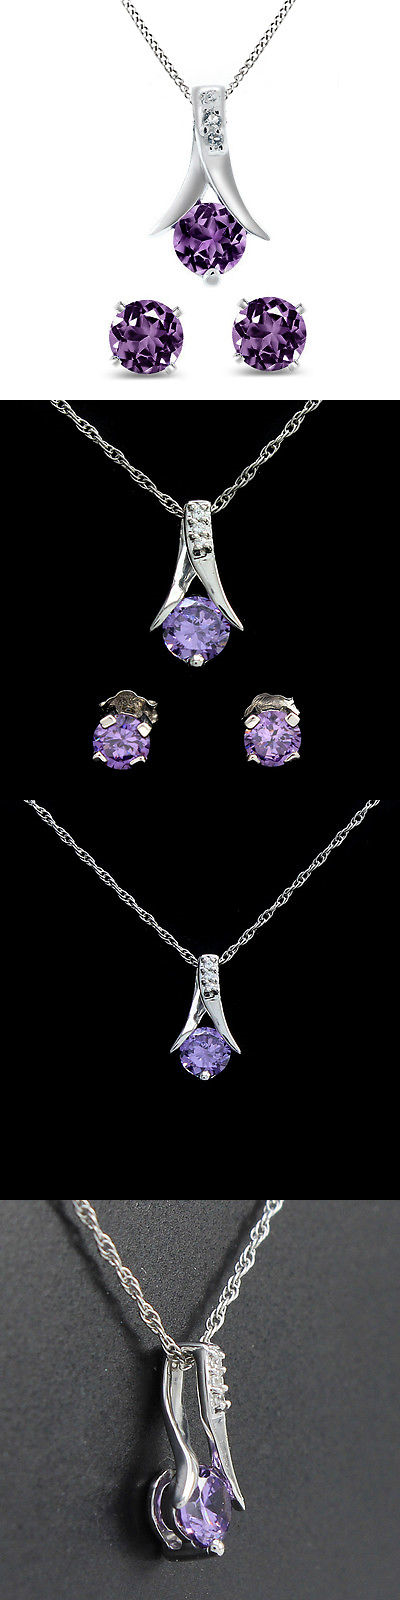 Other Wedding Jewelry 164311: 2.25 Ct Round Purple Amethyst .925 Silver Pendant And Earrings Set 18 Chain -> BUY IT NOW ONLY: $129.99 on eBay!